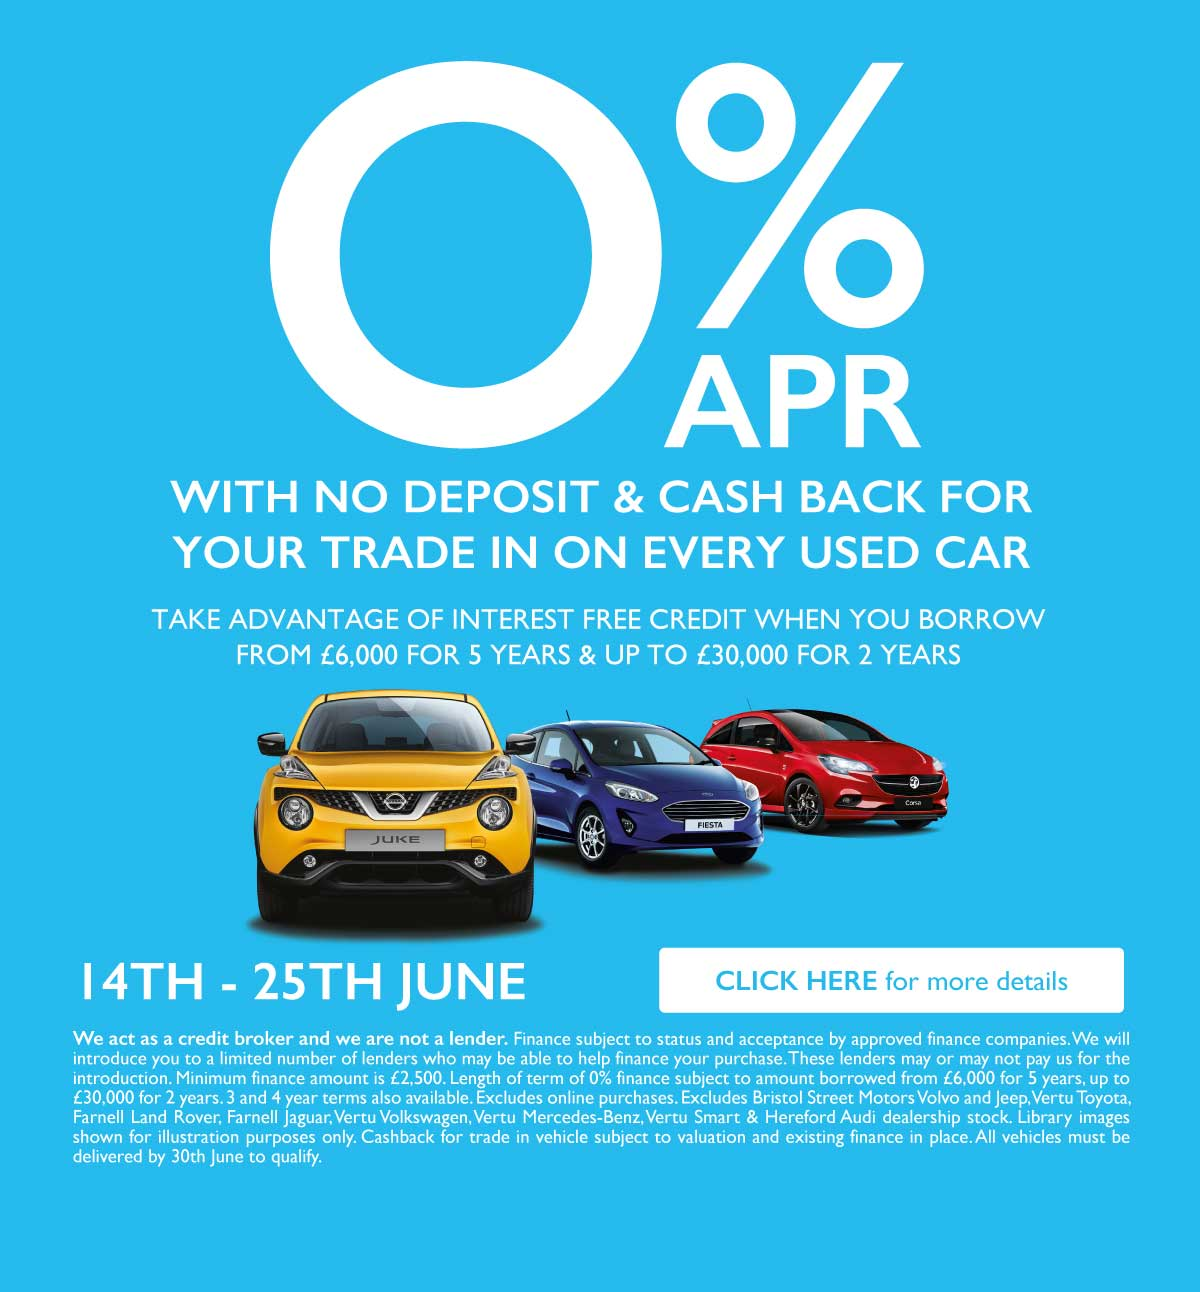 0% Used Car Event June 2019 - BSM SEAT